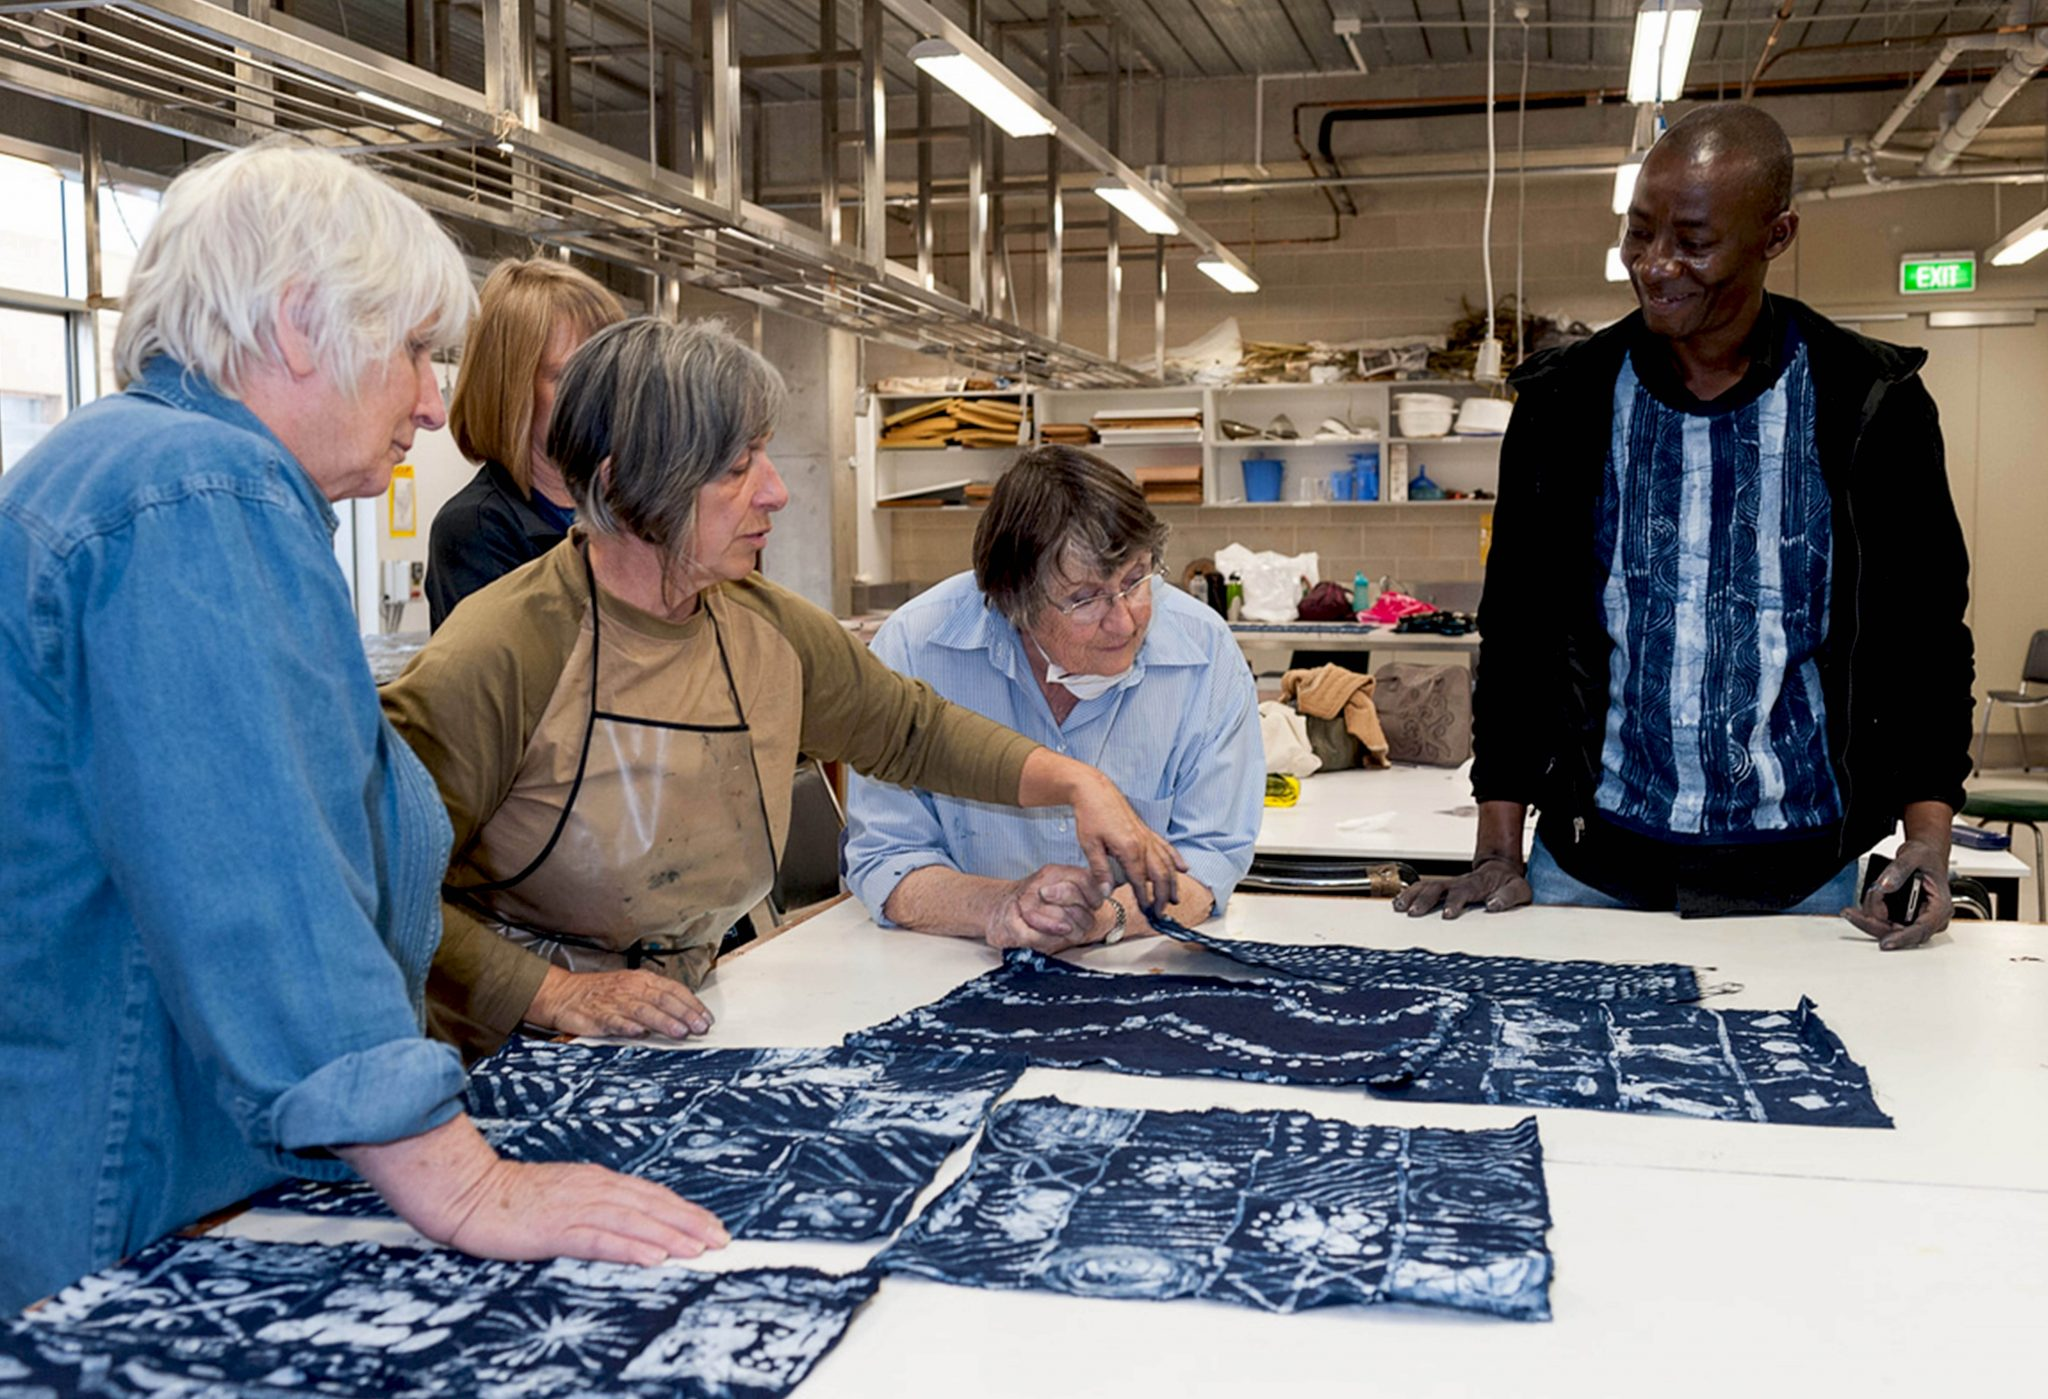 A group of five people standing around the table handling and looking at various dark blue textiles atop the table